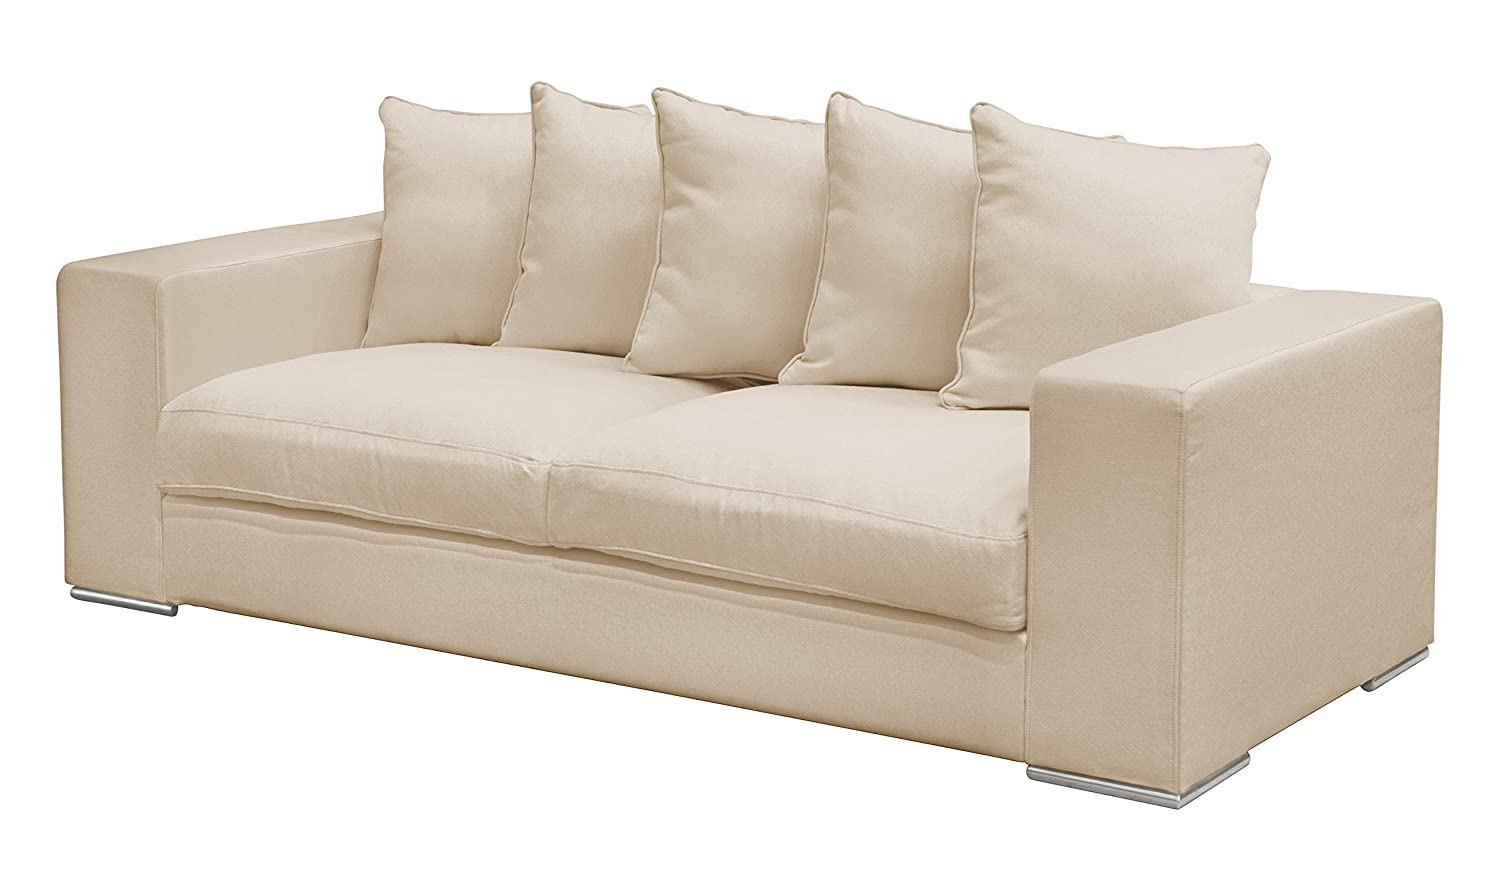 AMARIS Elements SO003.3 Sofa 3-Sitzer 224 x 106 x 65/45 cm, creme